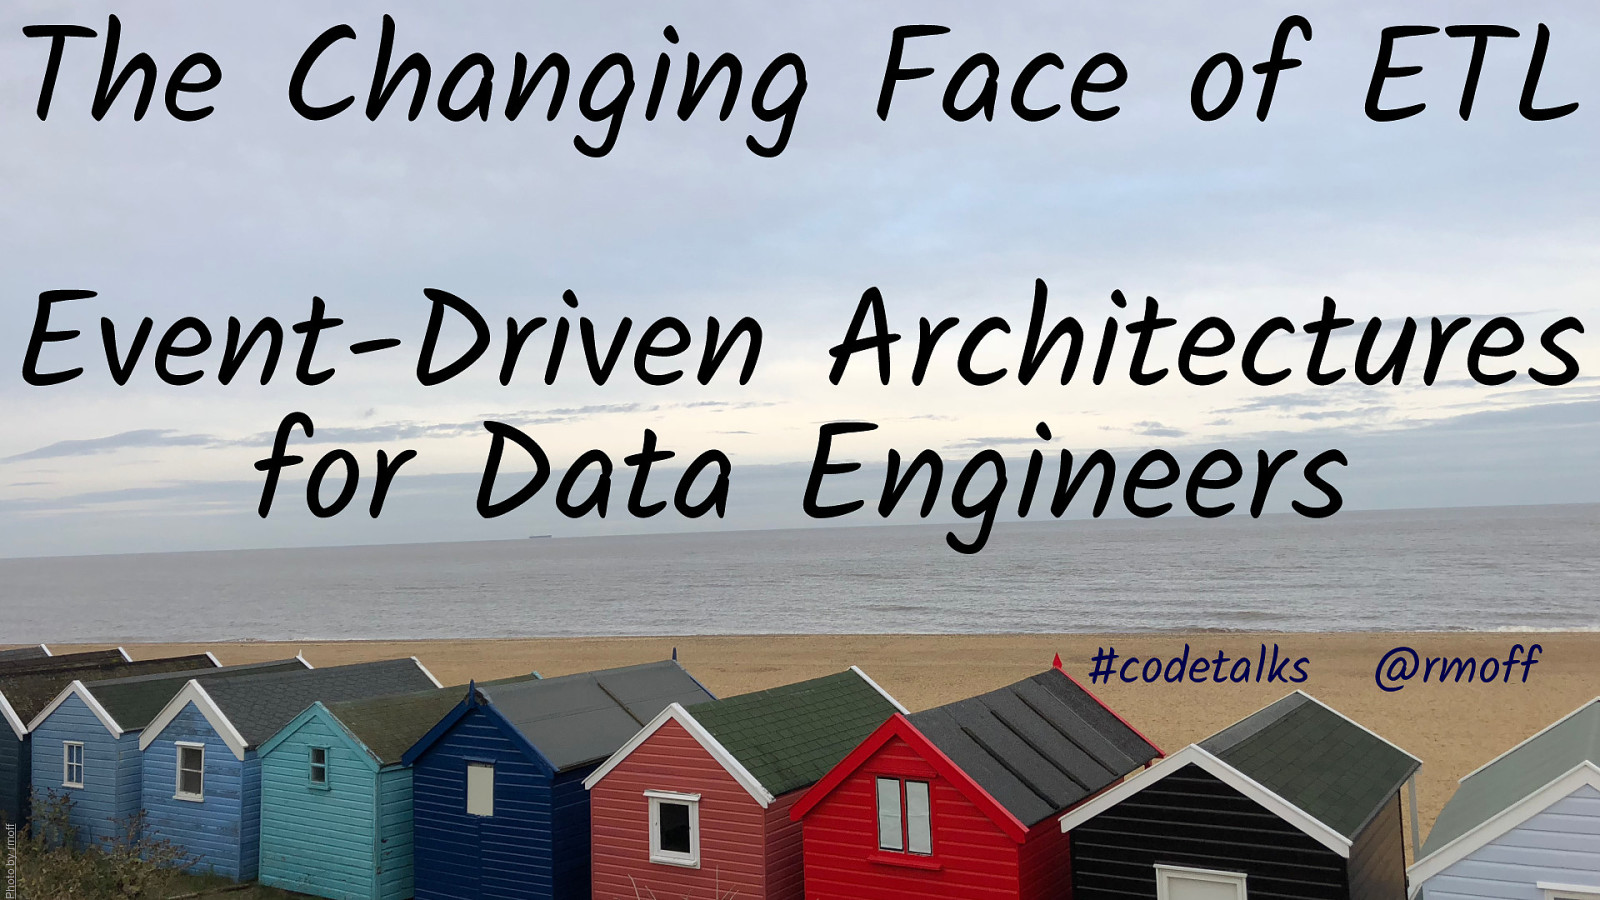 The Changing Face of ETL: Event-Driven Architectures for DataEngineers